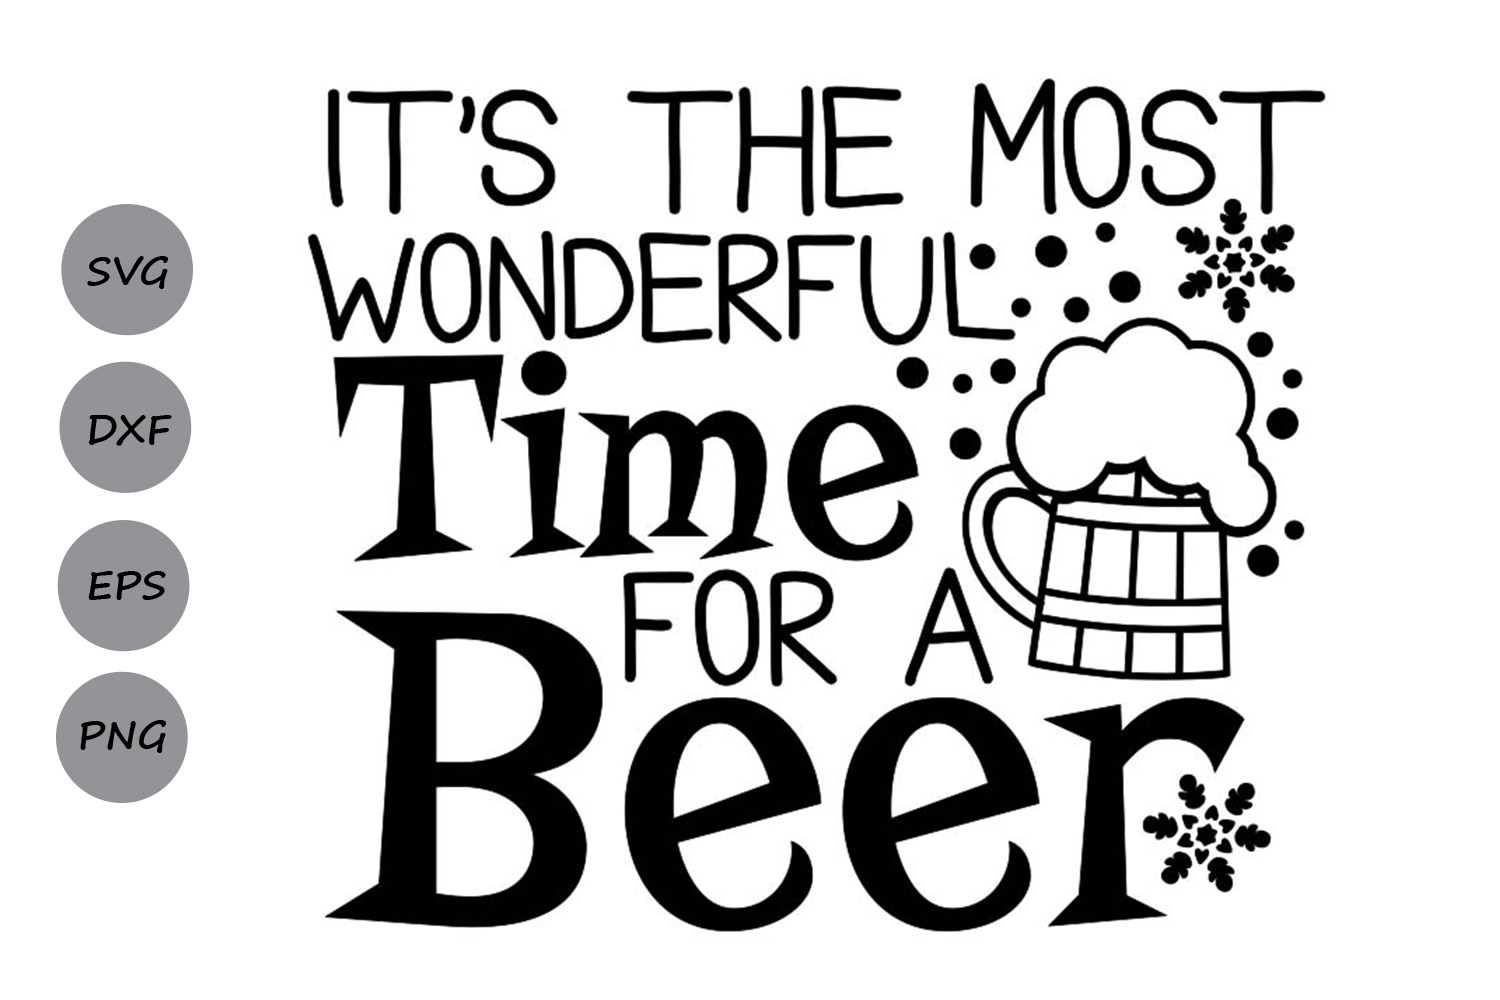 Download Free It S The Most Wonderful Time For A Beer Graphic By Cosmosfineart for Cricut Explore, Silhouette and other cutting machines.